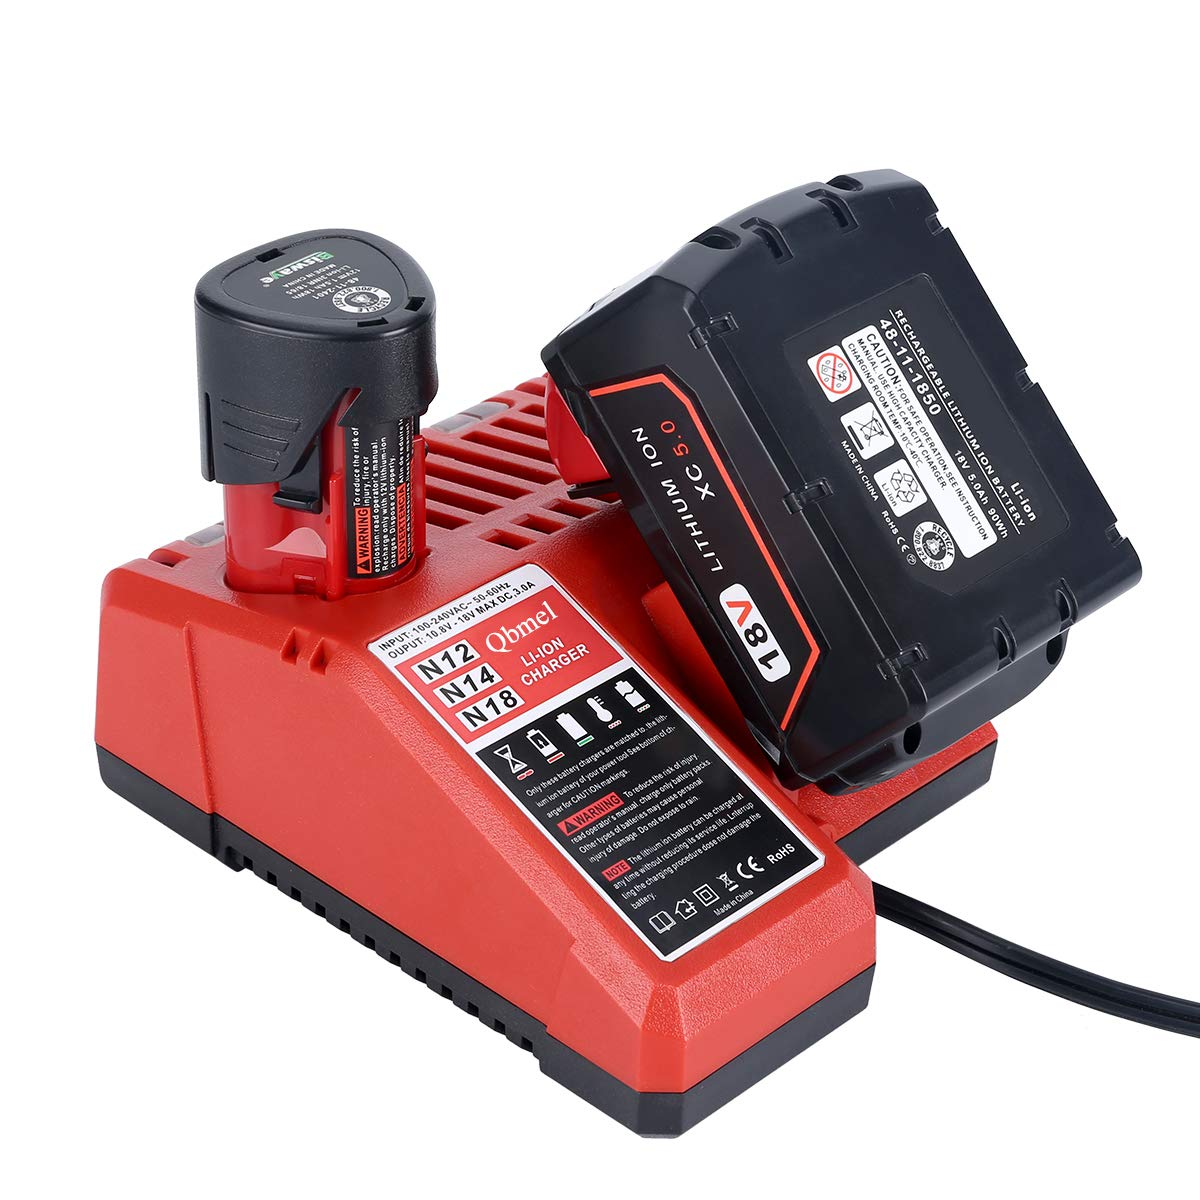 M12 & M18 Multi Voltage Lithium Ion Battery Charger for Milwaukee 48-59-1812 18V&12V Fuel Gauge XC Battery - - Amazon.com